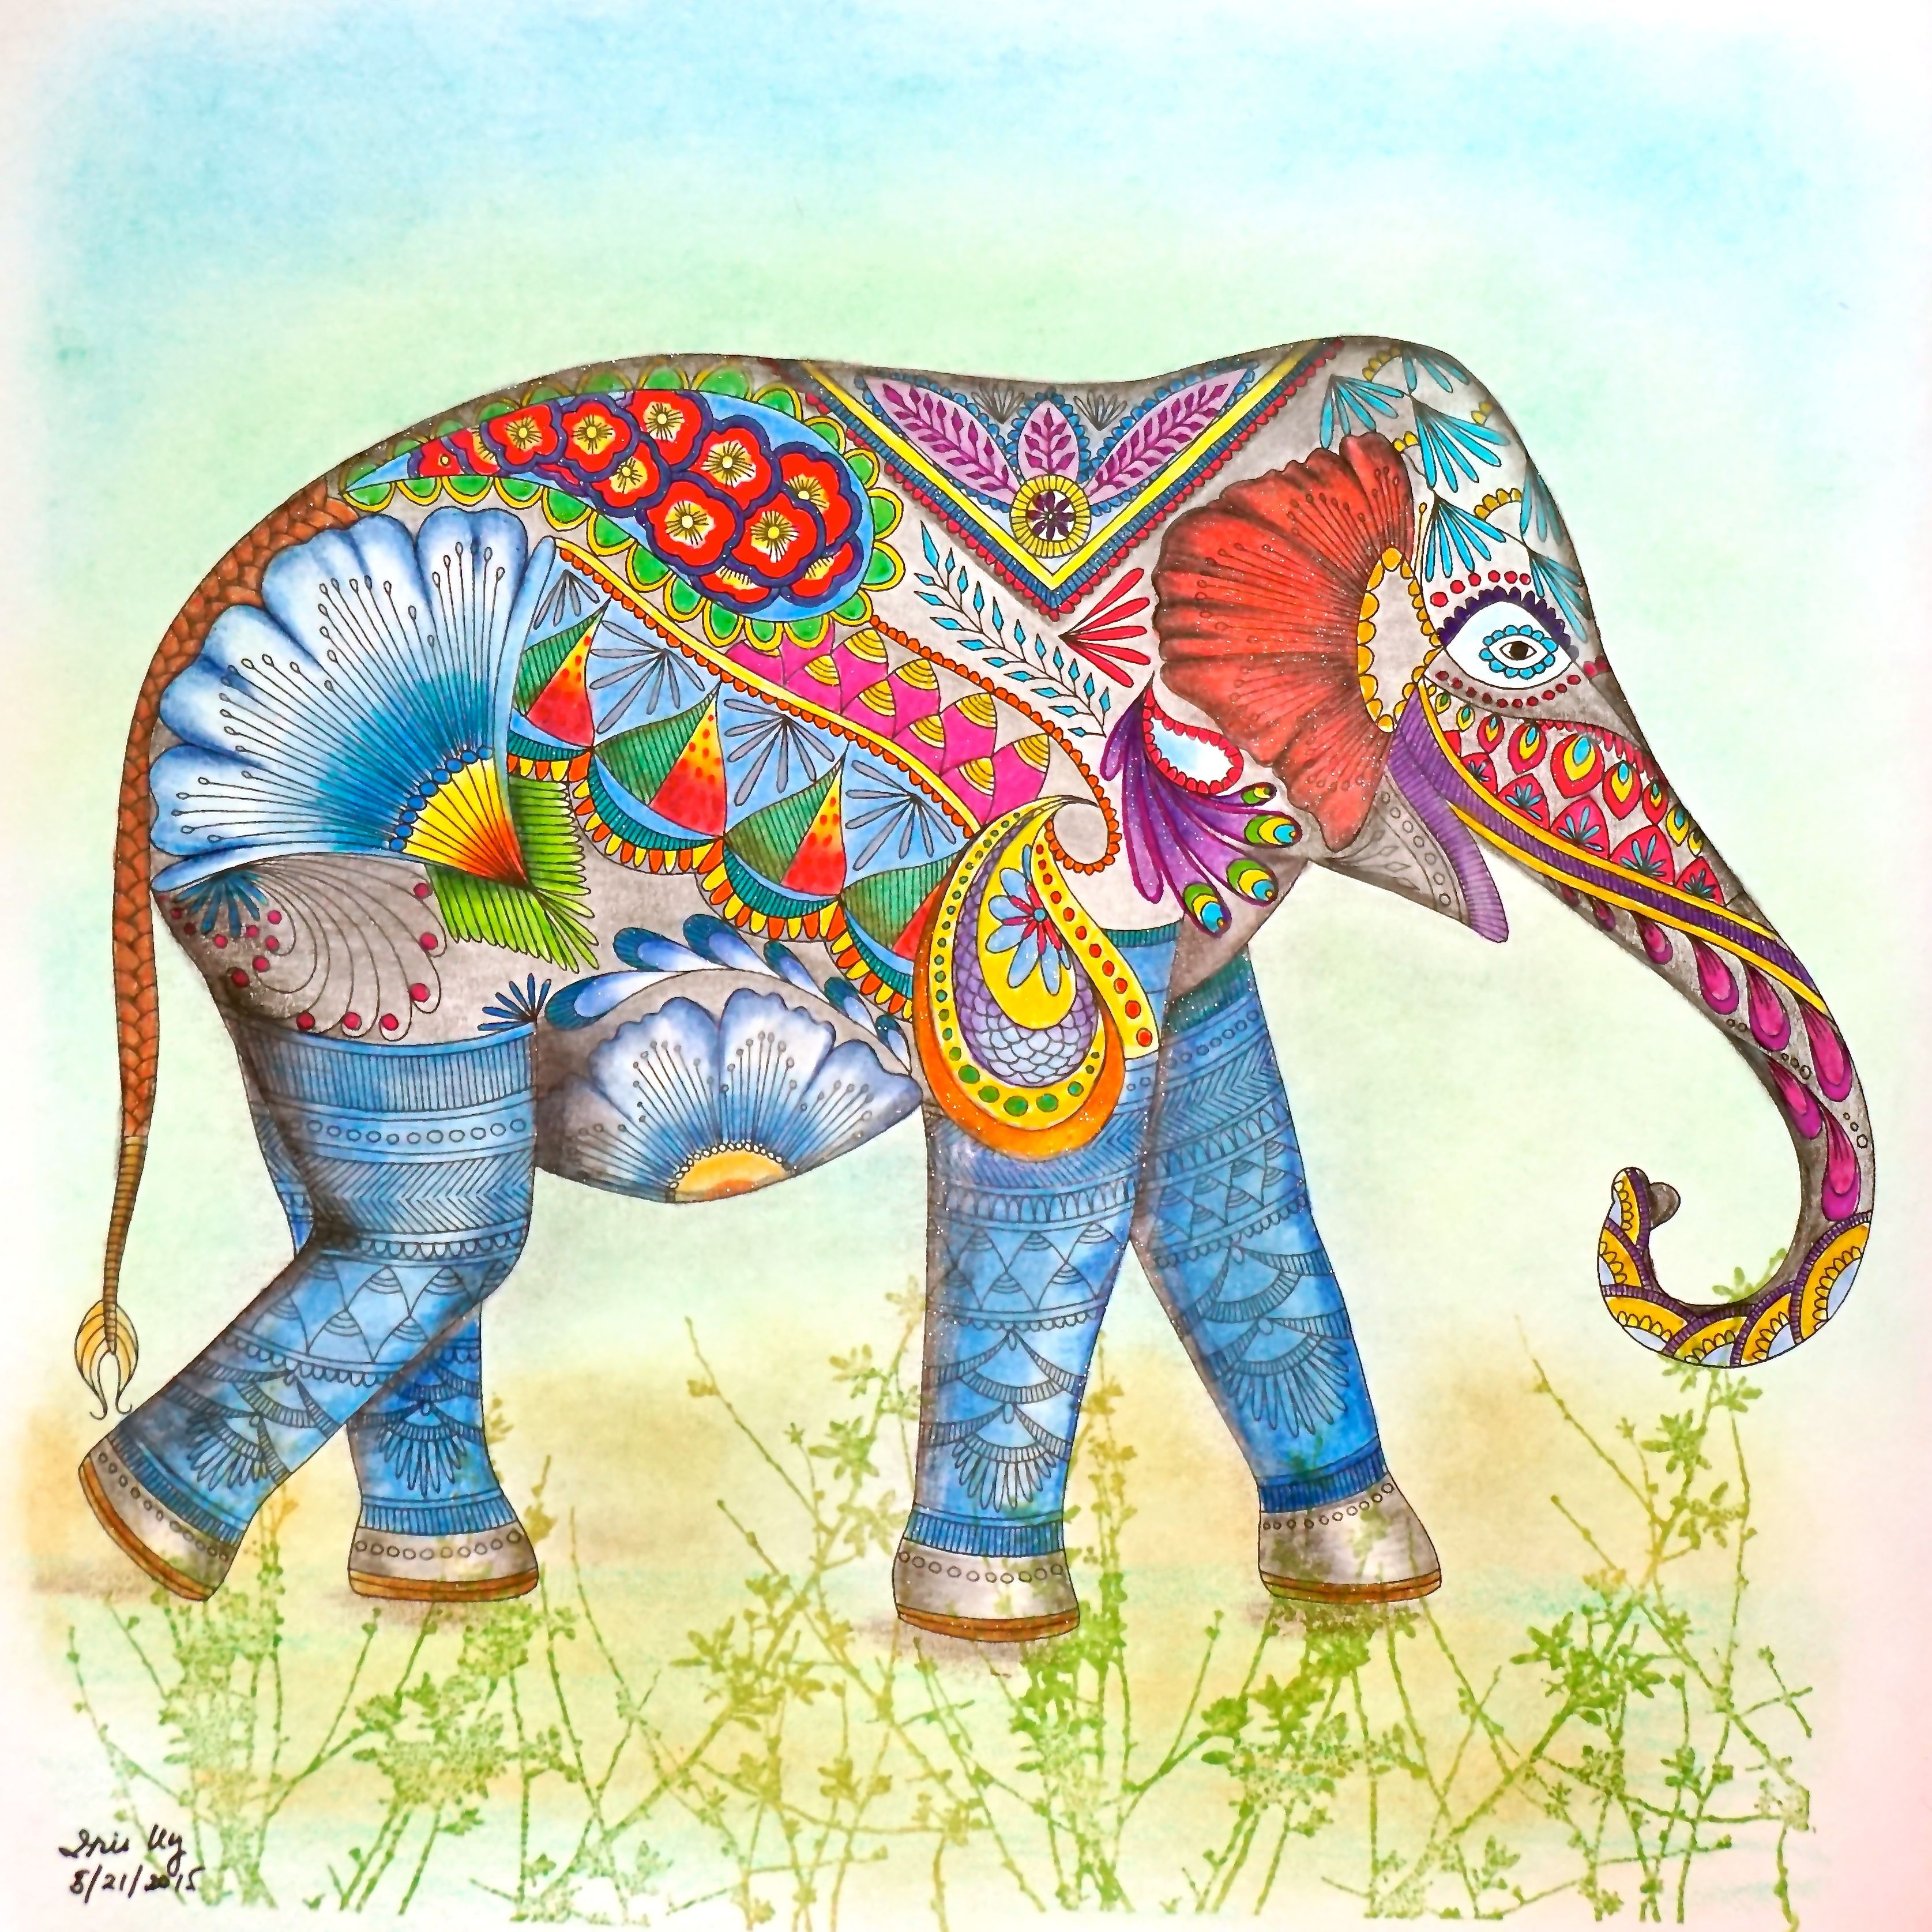 From Animal Kingdom Coloring Book Derwent Coloursoft Pencils Soft Pastels And Spica Glitter Pens